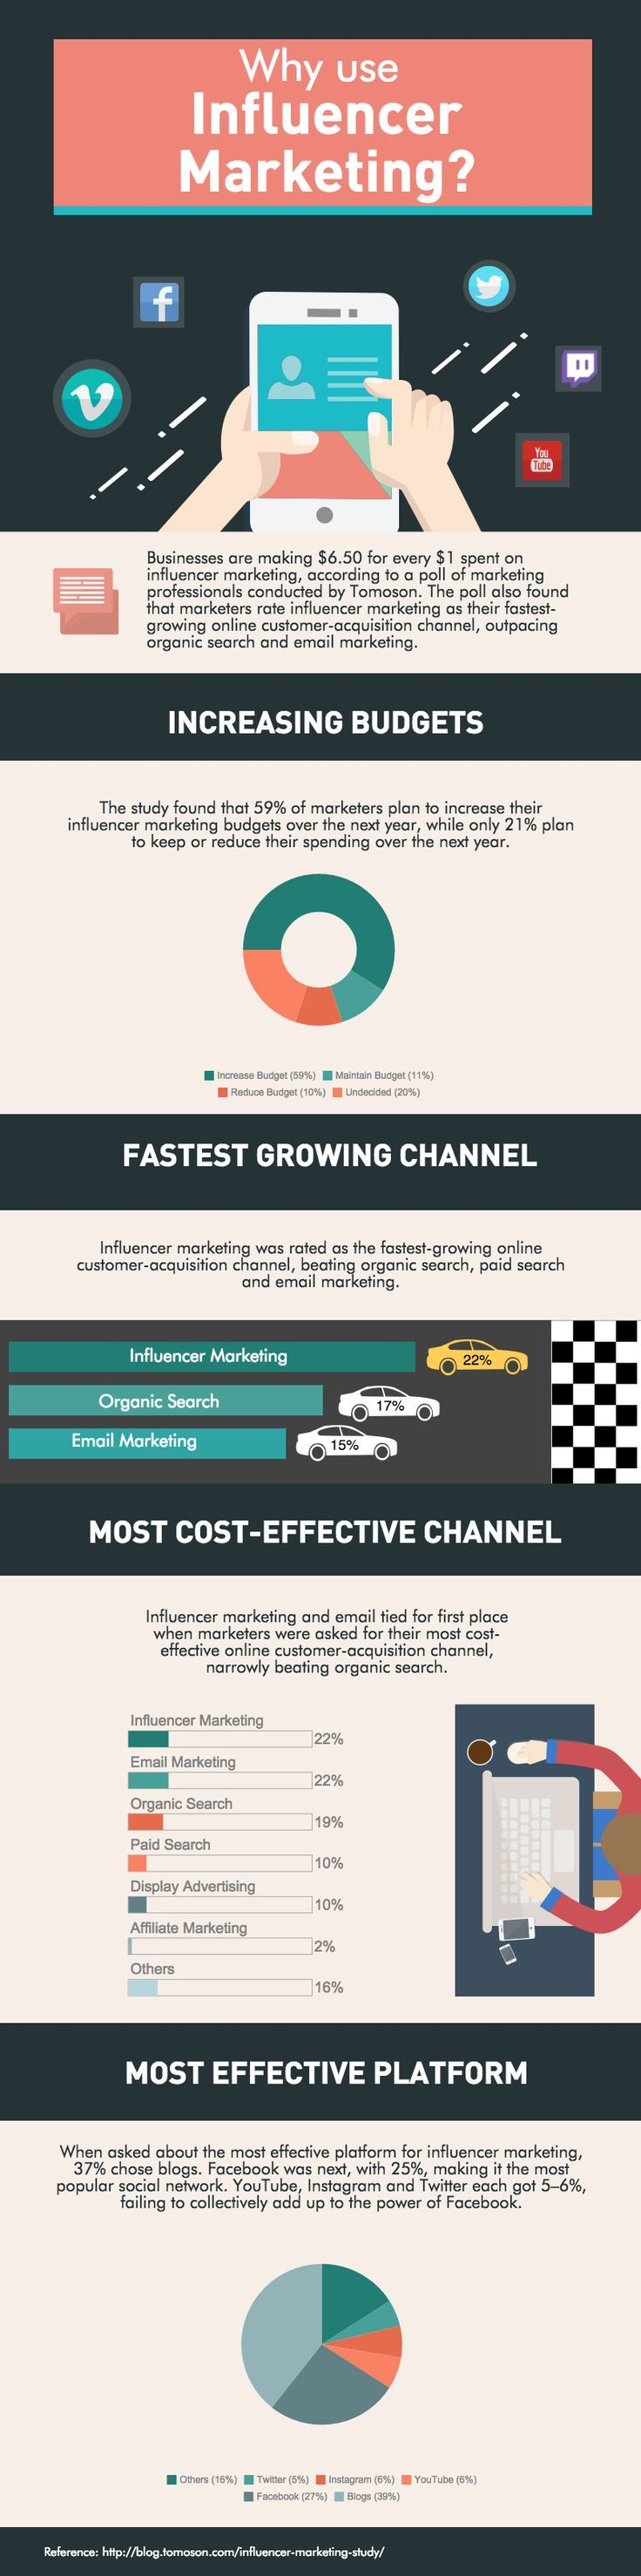 "Influencer #Marketing #Infographic. Influencer Marketing, or ""word of mouth"" marketing, is when your biggest advocates are also your valued customers"